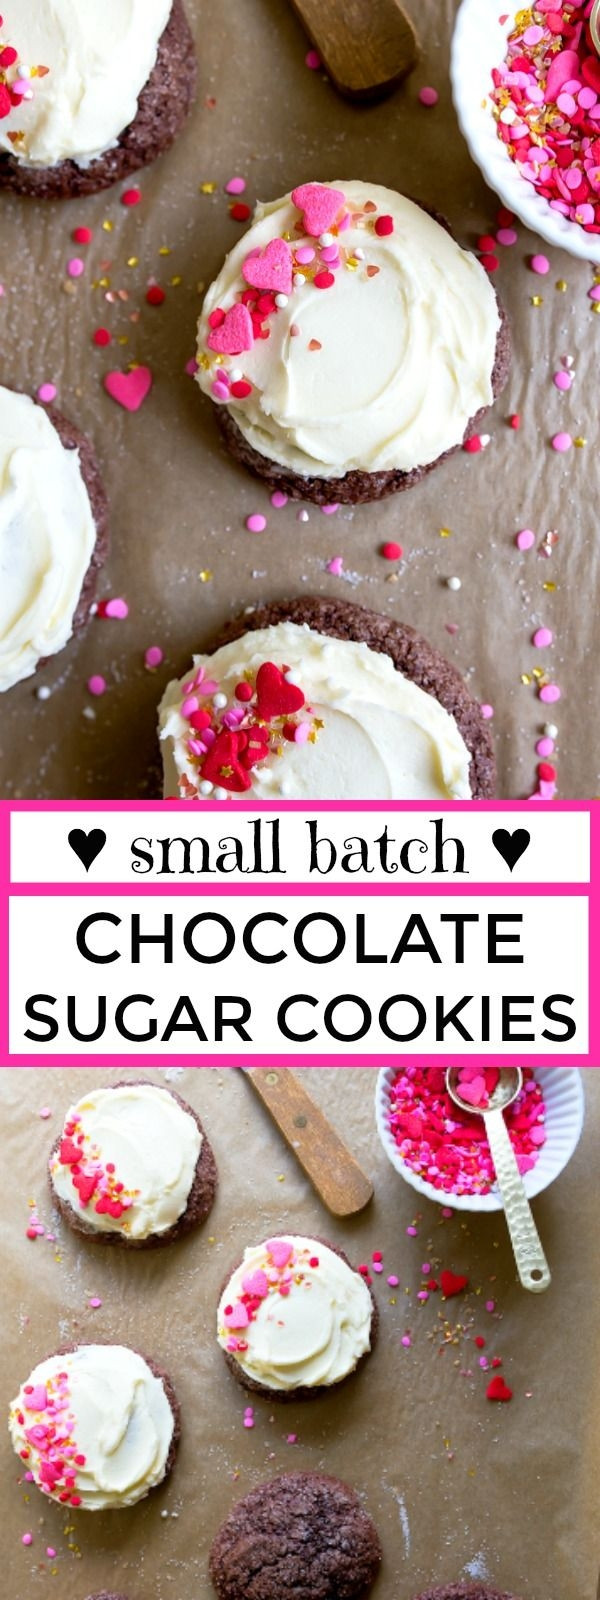 Small Batch Sugar Cookies  Small batch cookies chocolate sugar cookies with frosting